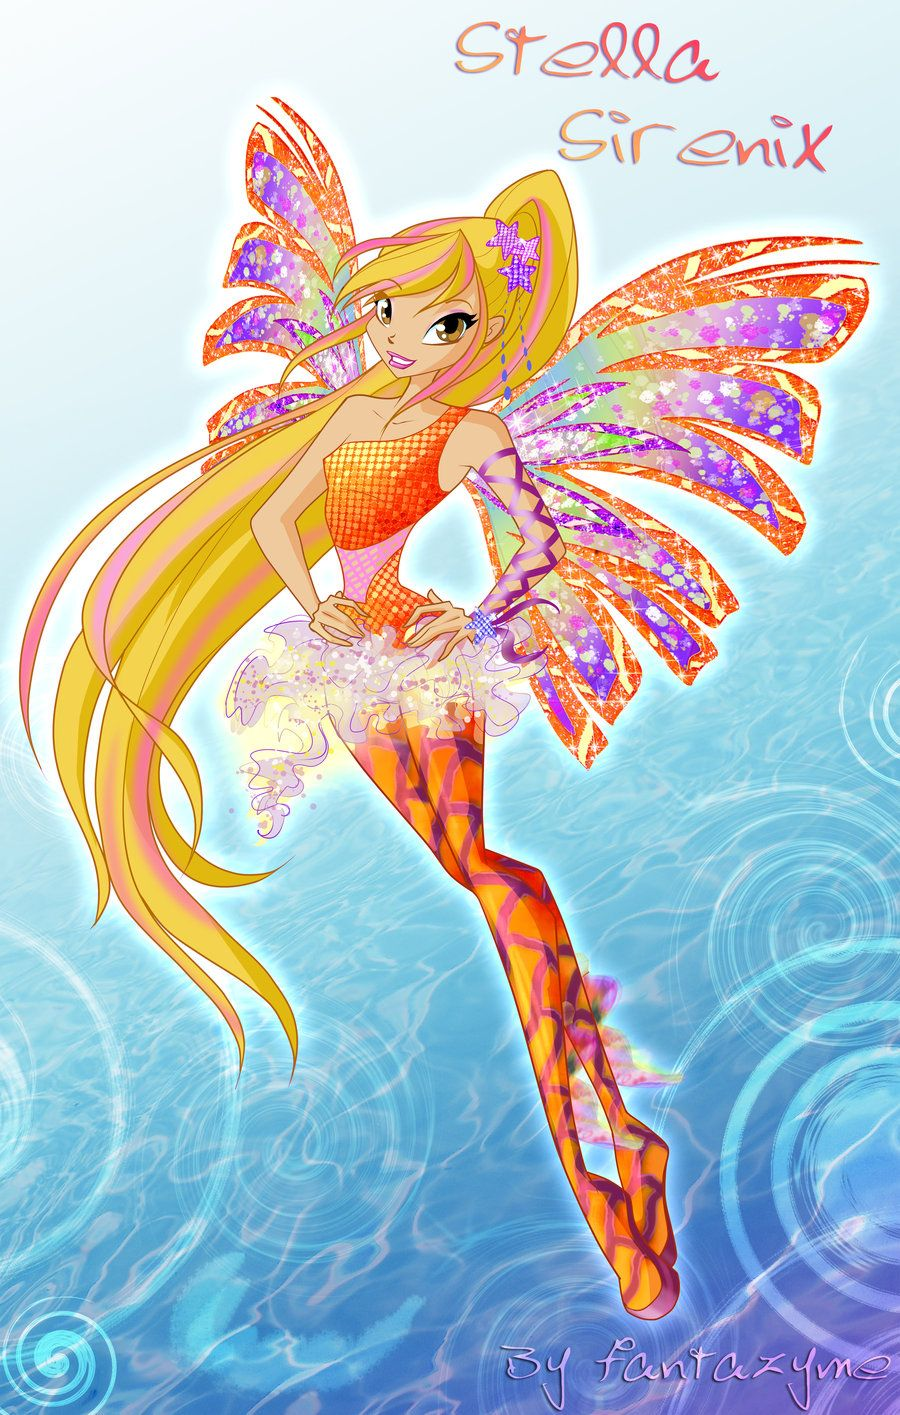 Winx club Stella Sirenix by fantazyme.deviantart.com on @deviantART